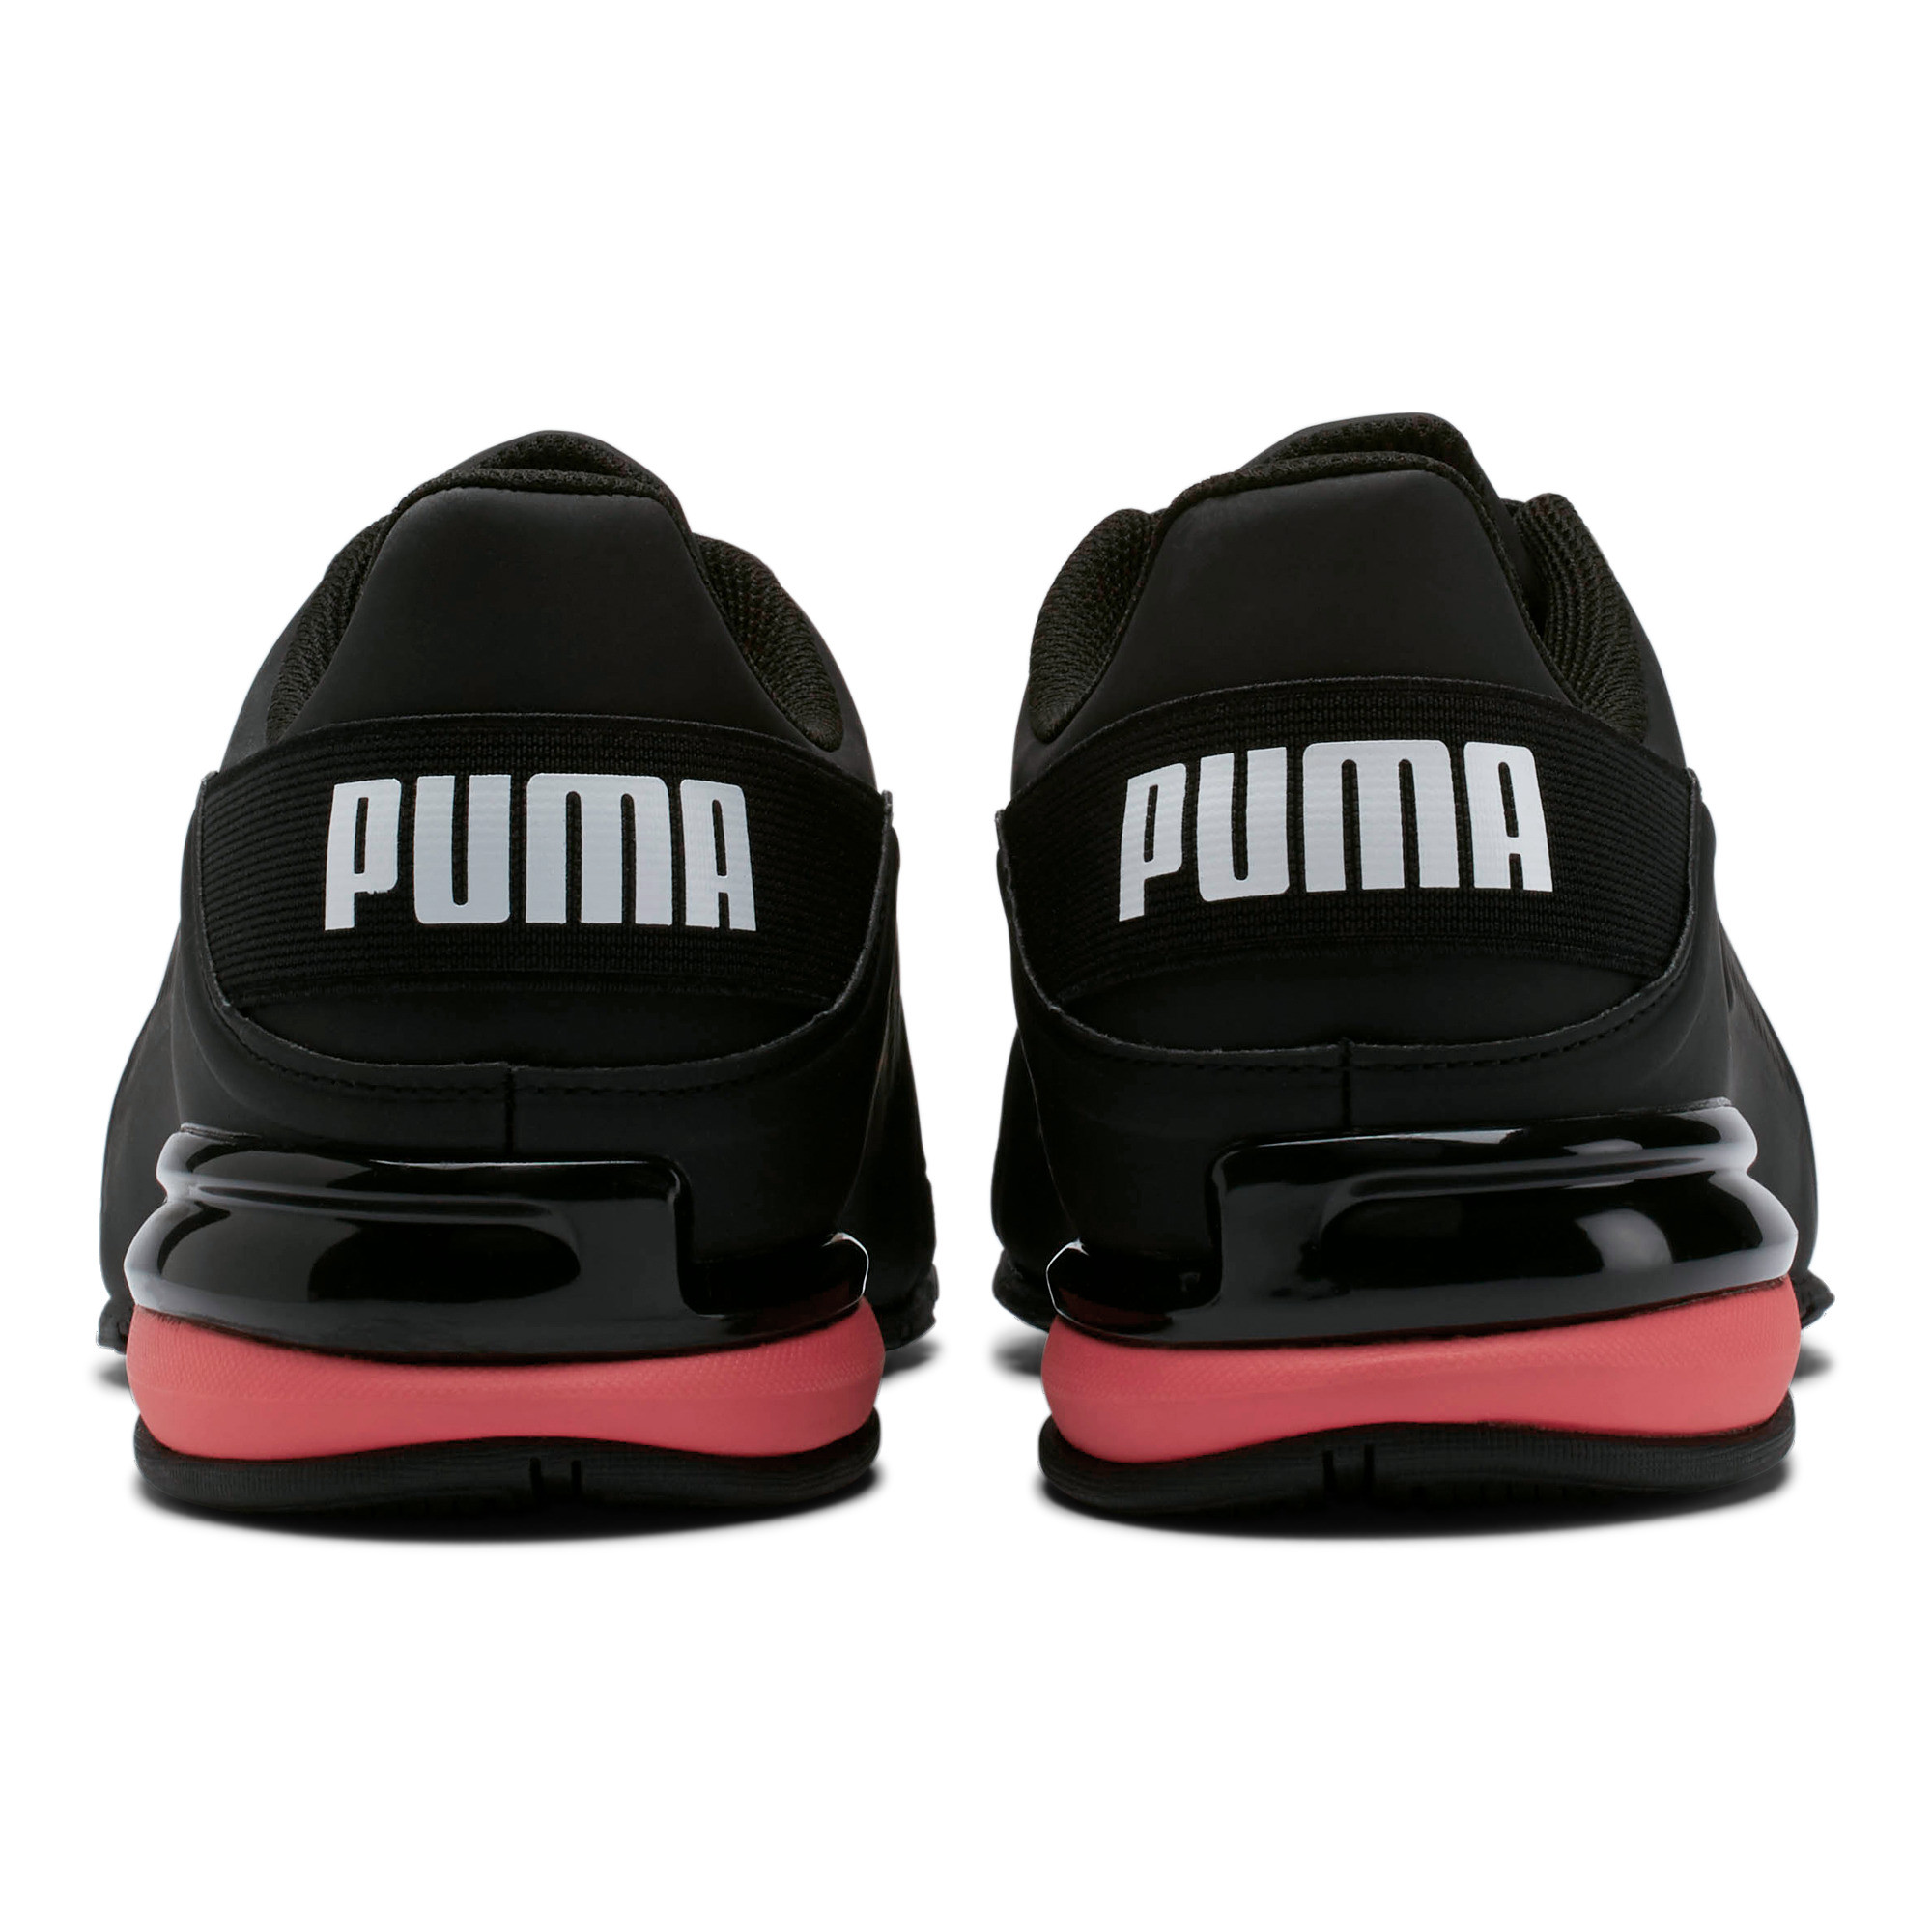 thumbnail 3 - PUMA Men's Viz Runner Training Shoes